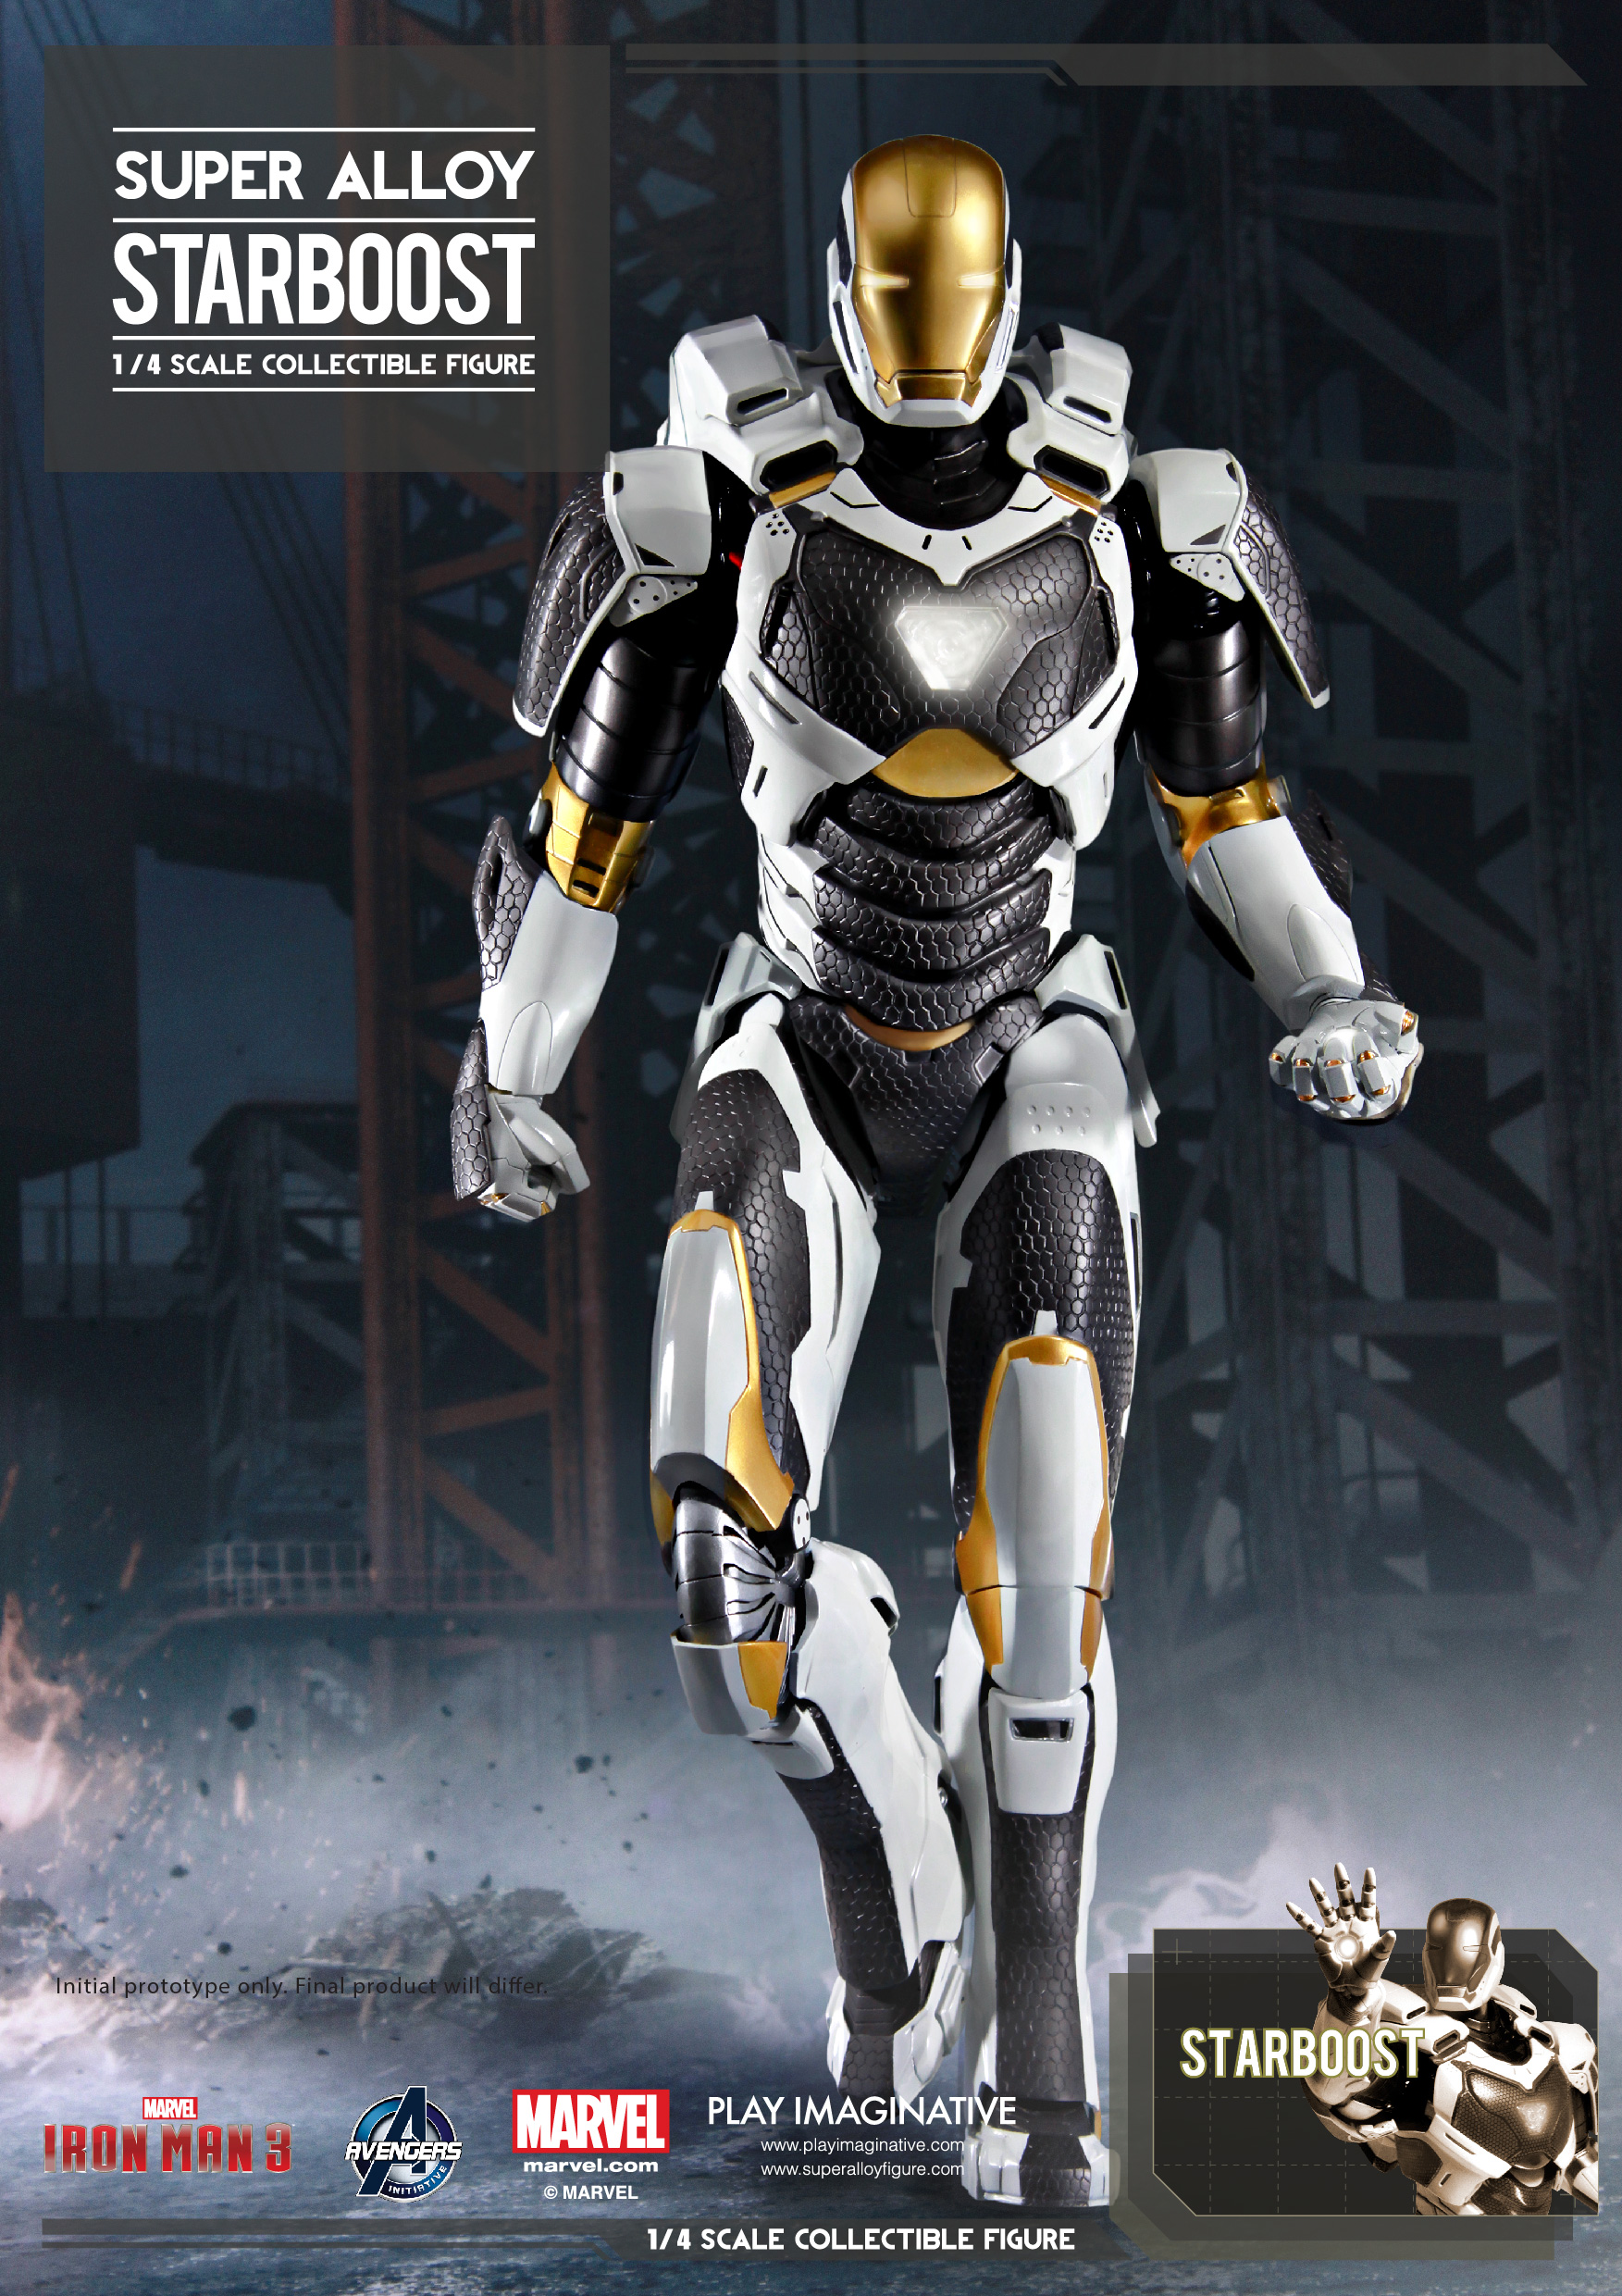 Super Alloy 18-inches Starboost 02 • Toywiz and Toy Garden